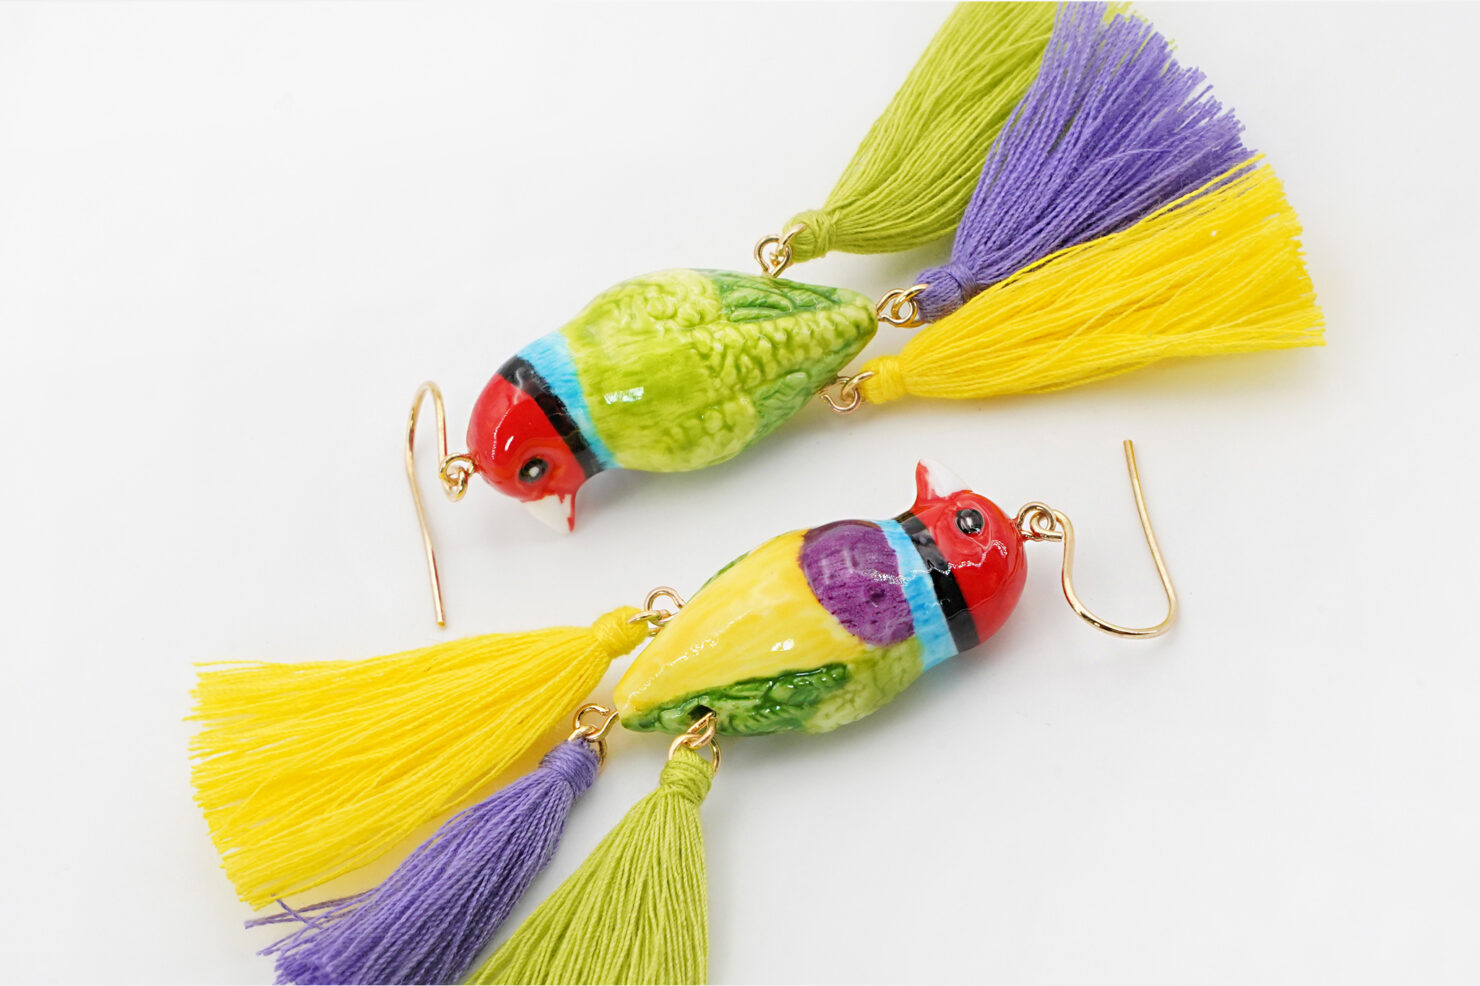 GOULDIAN FINCH BIRD WITH 3 POMPOMS EARRINGS - NACH